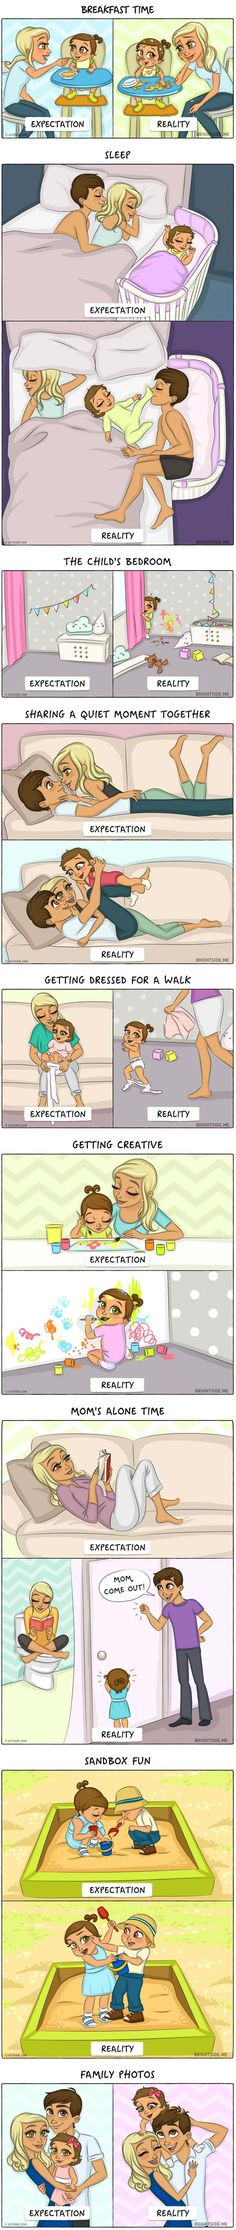 How Life Changes When You Become A Parent